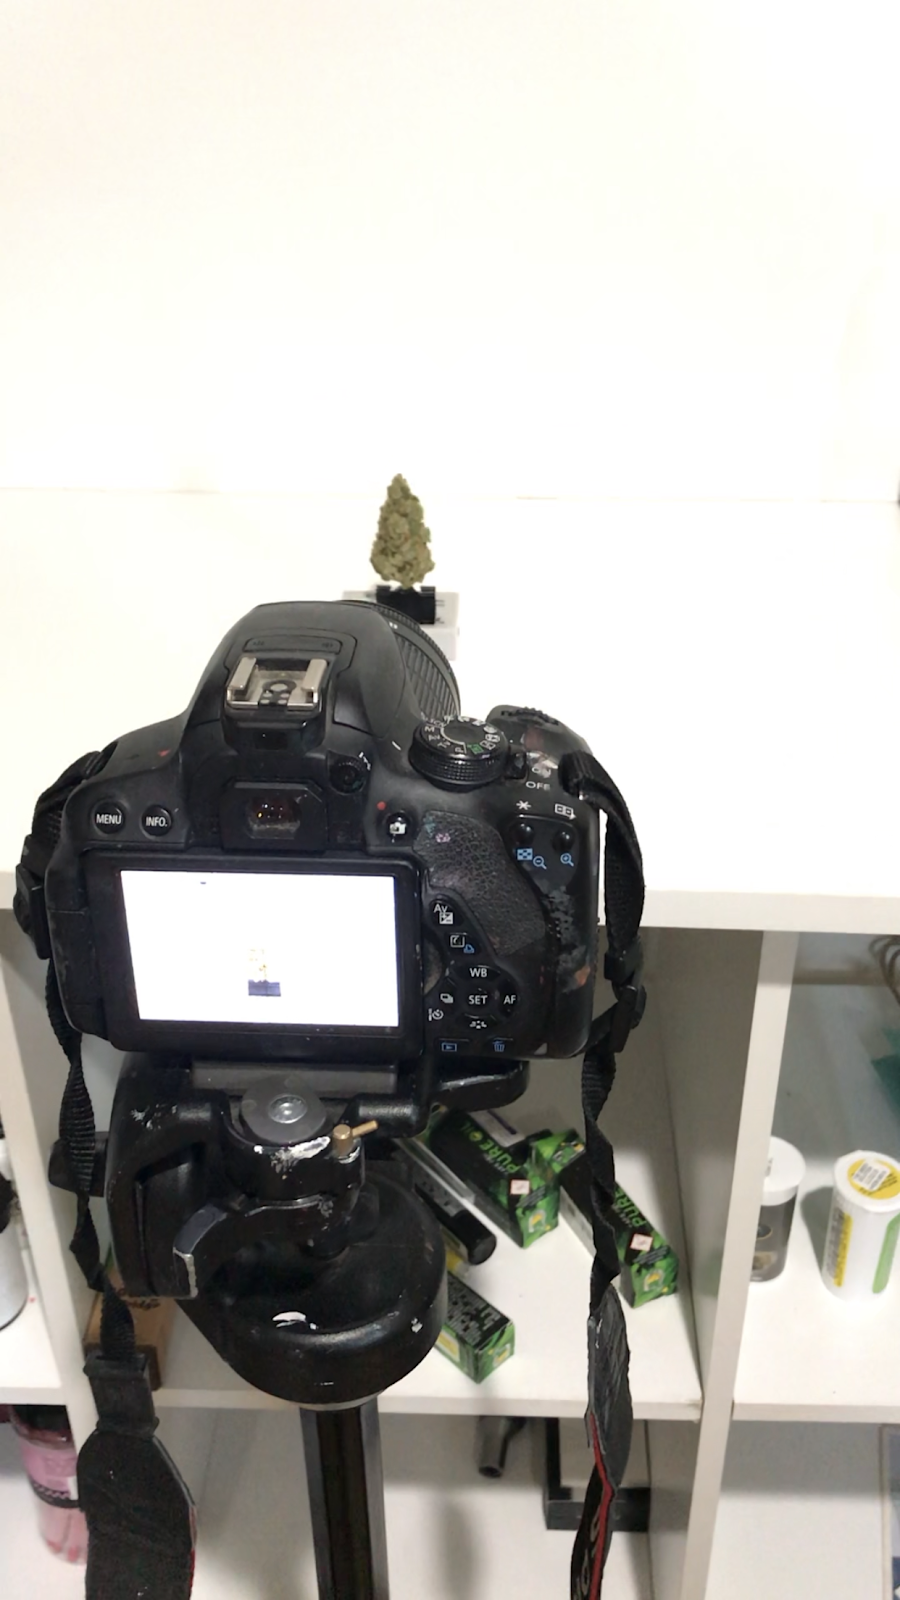 DIY, at home cannabis photography studio. Camera set on tripod, aimed at marijuana positioned on a white backdrop.